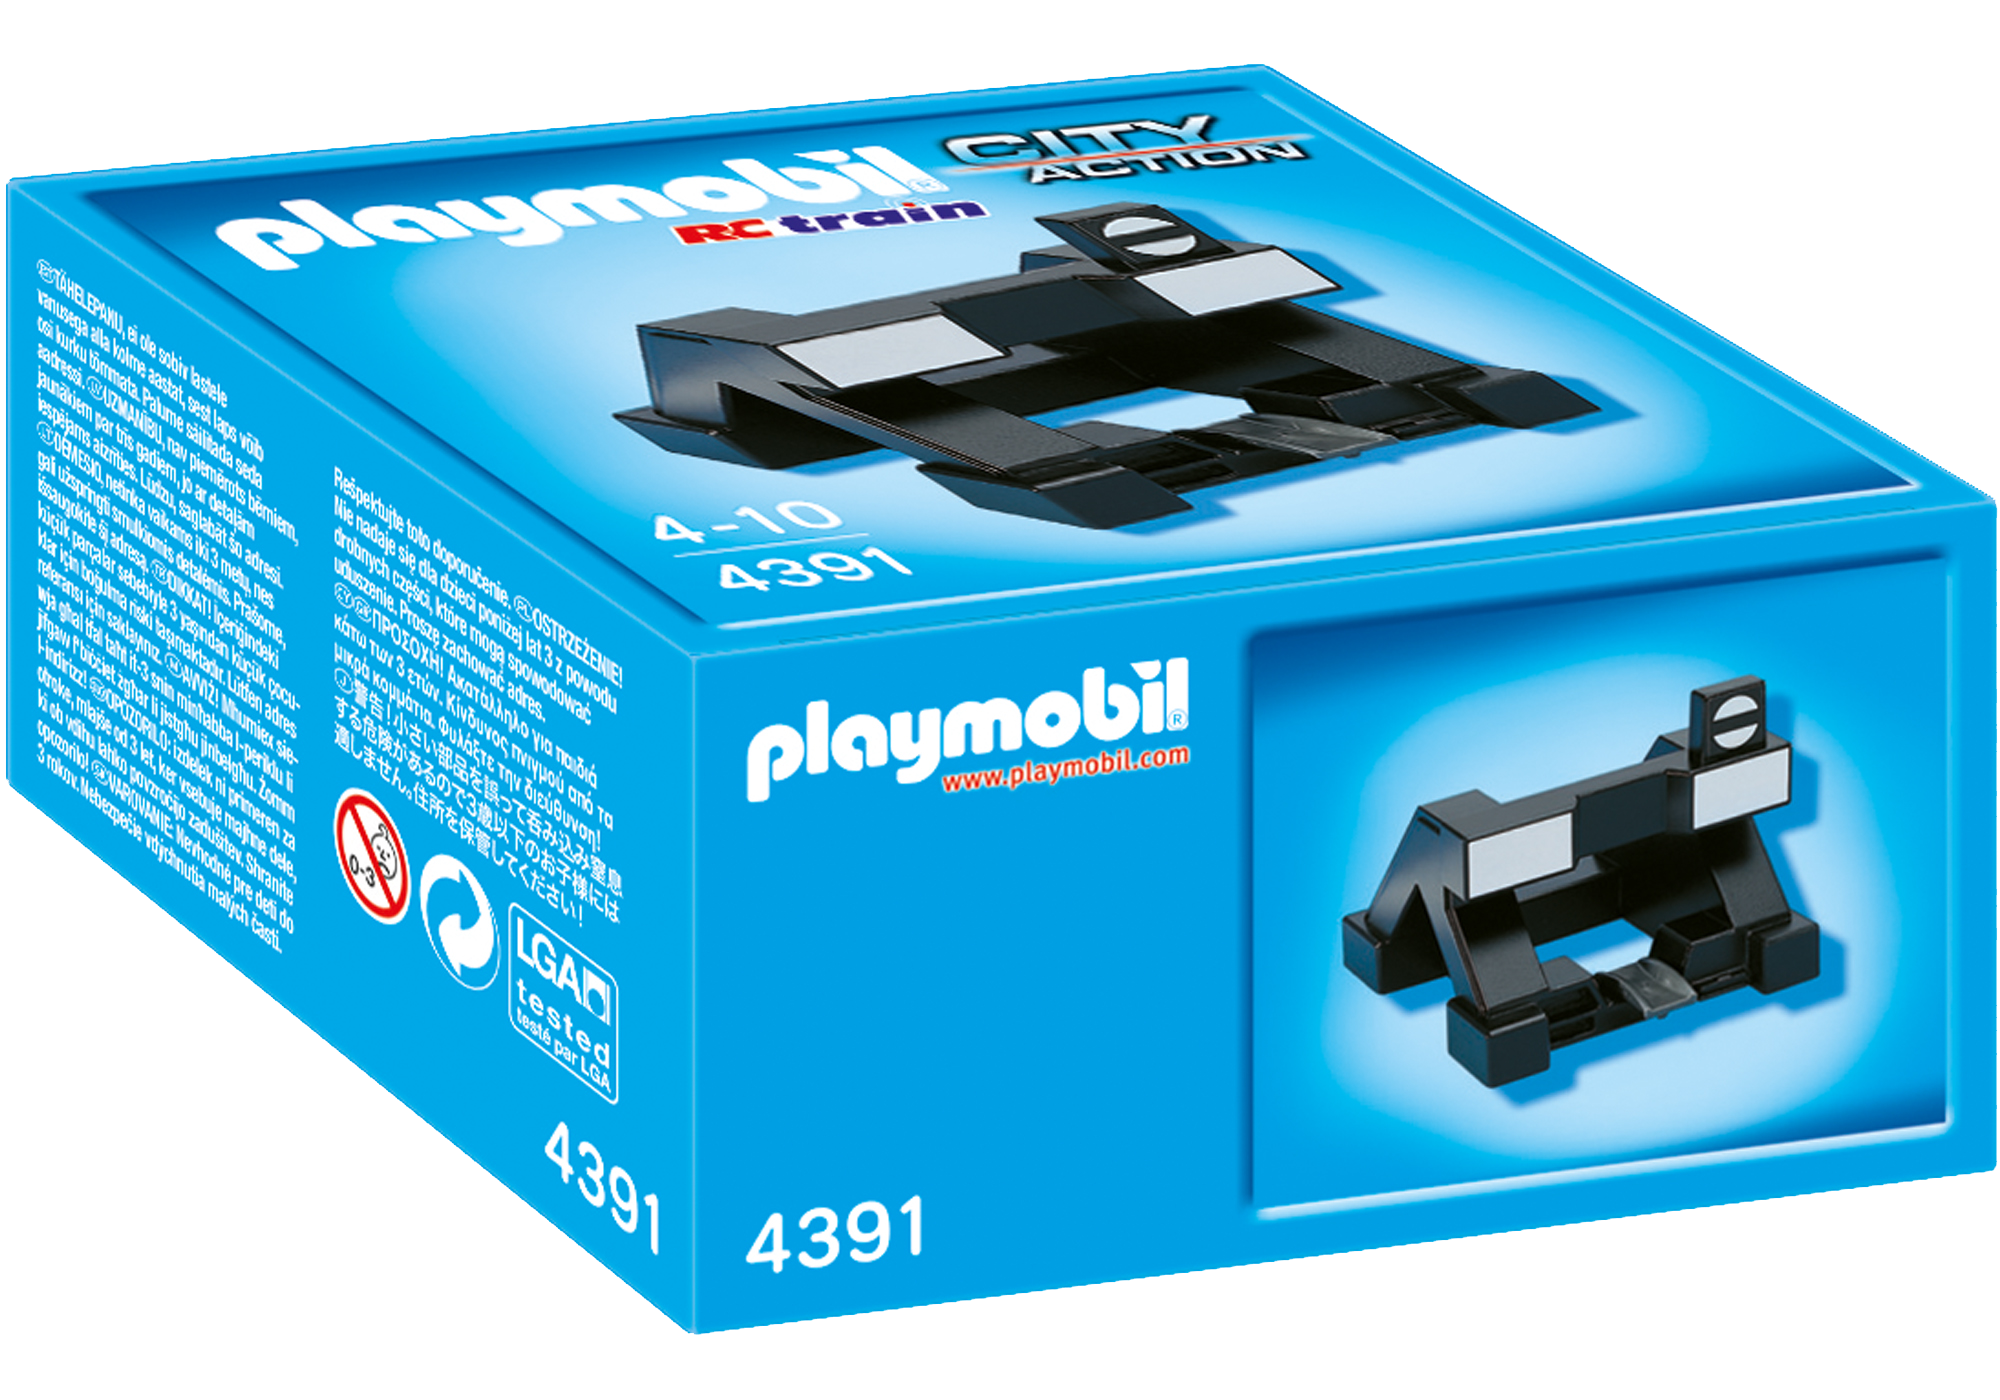 http://media.playmobil.com/i/playmobil/4391_product_box_front/Sporstopper